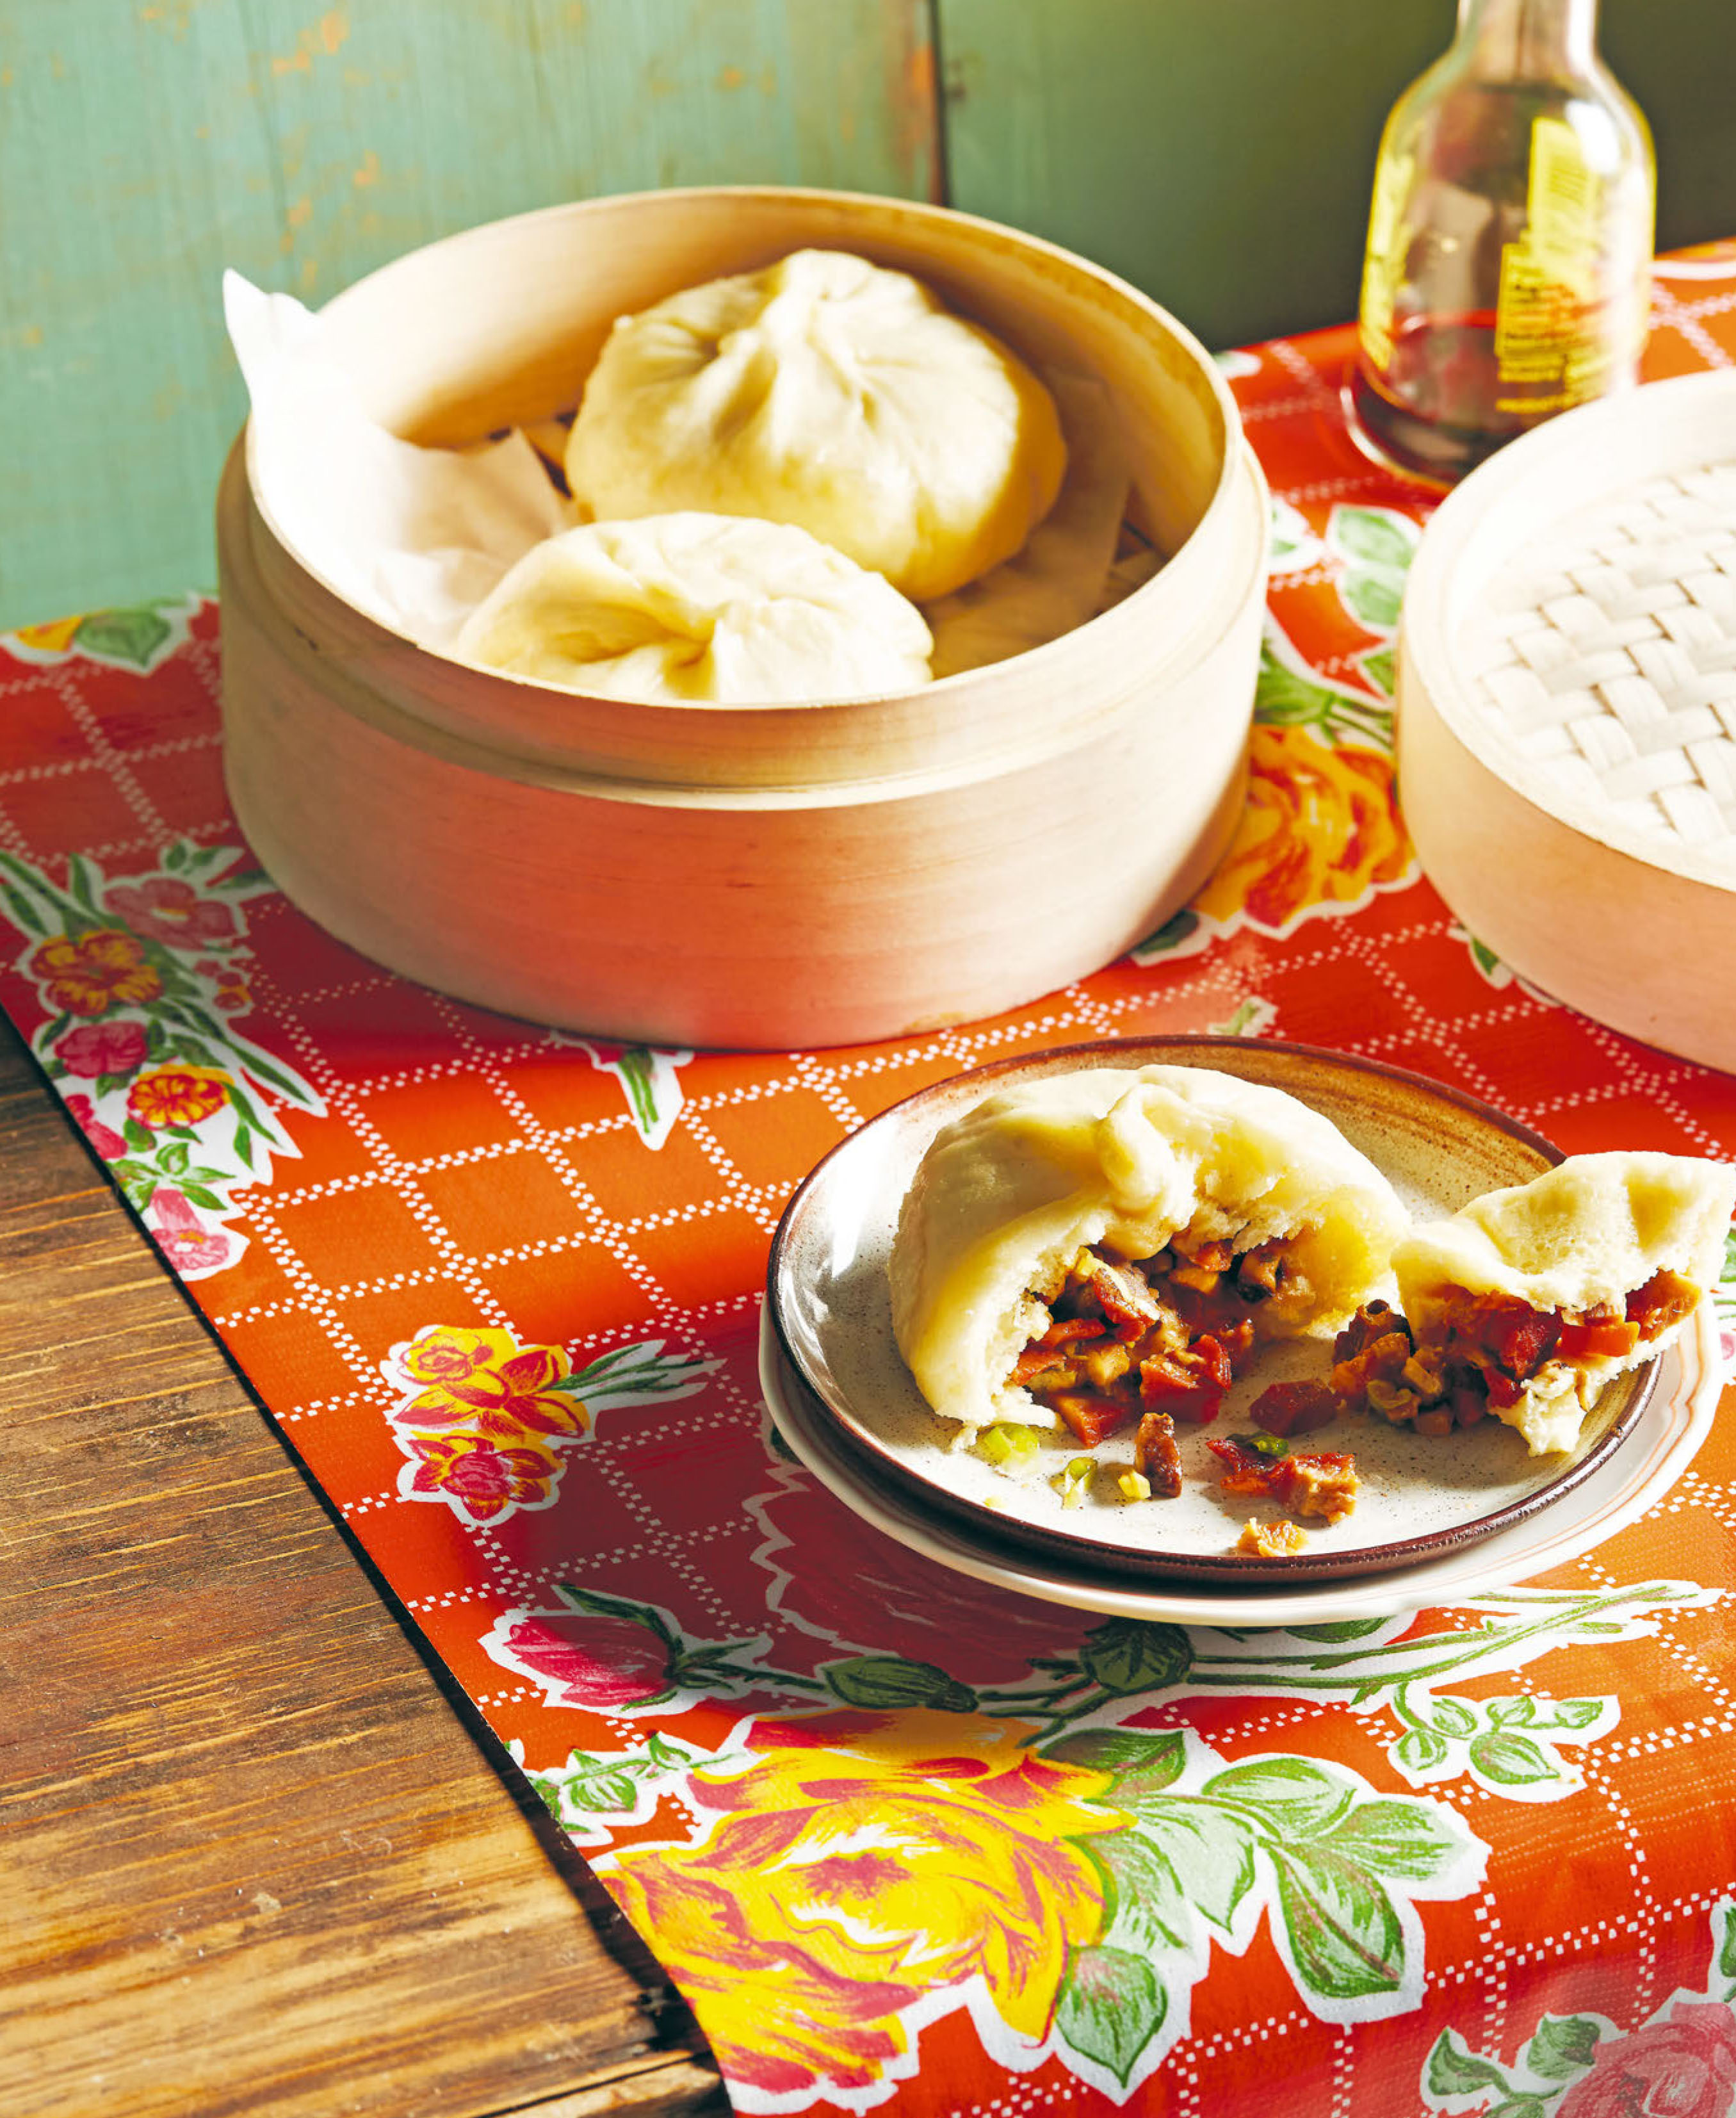 Steamed roast pork buns